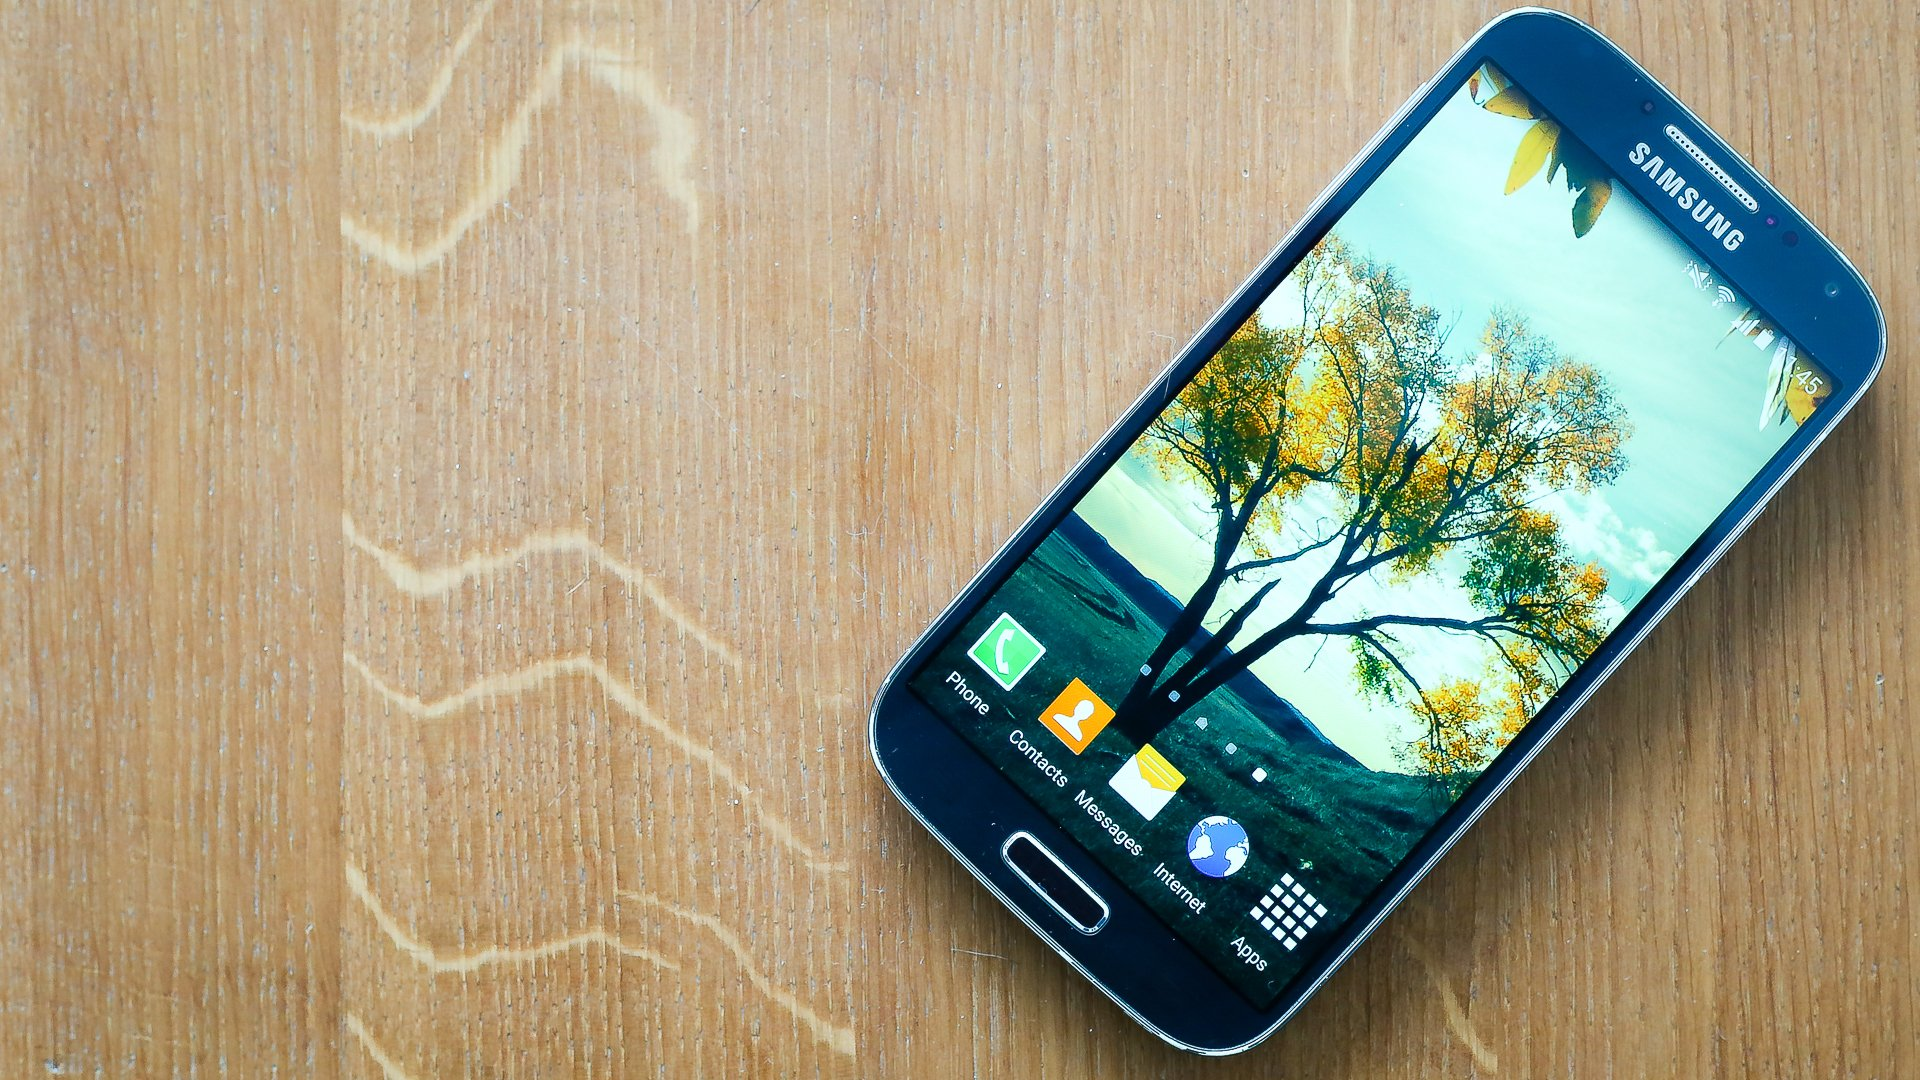 Galaxy S4 Owners Here Are 5 Reasons You Shouldn T Upgrade To A New